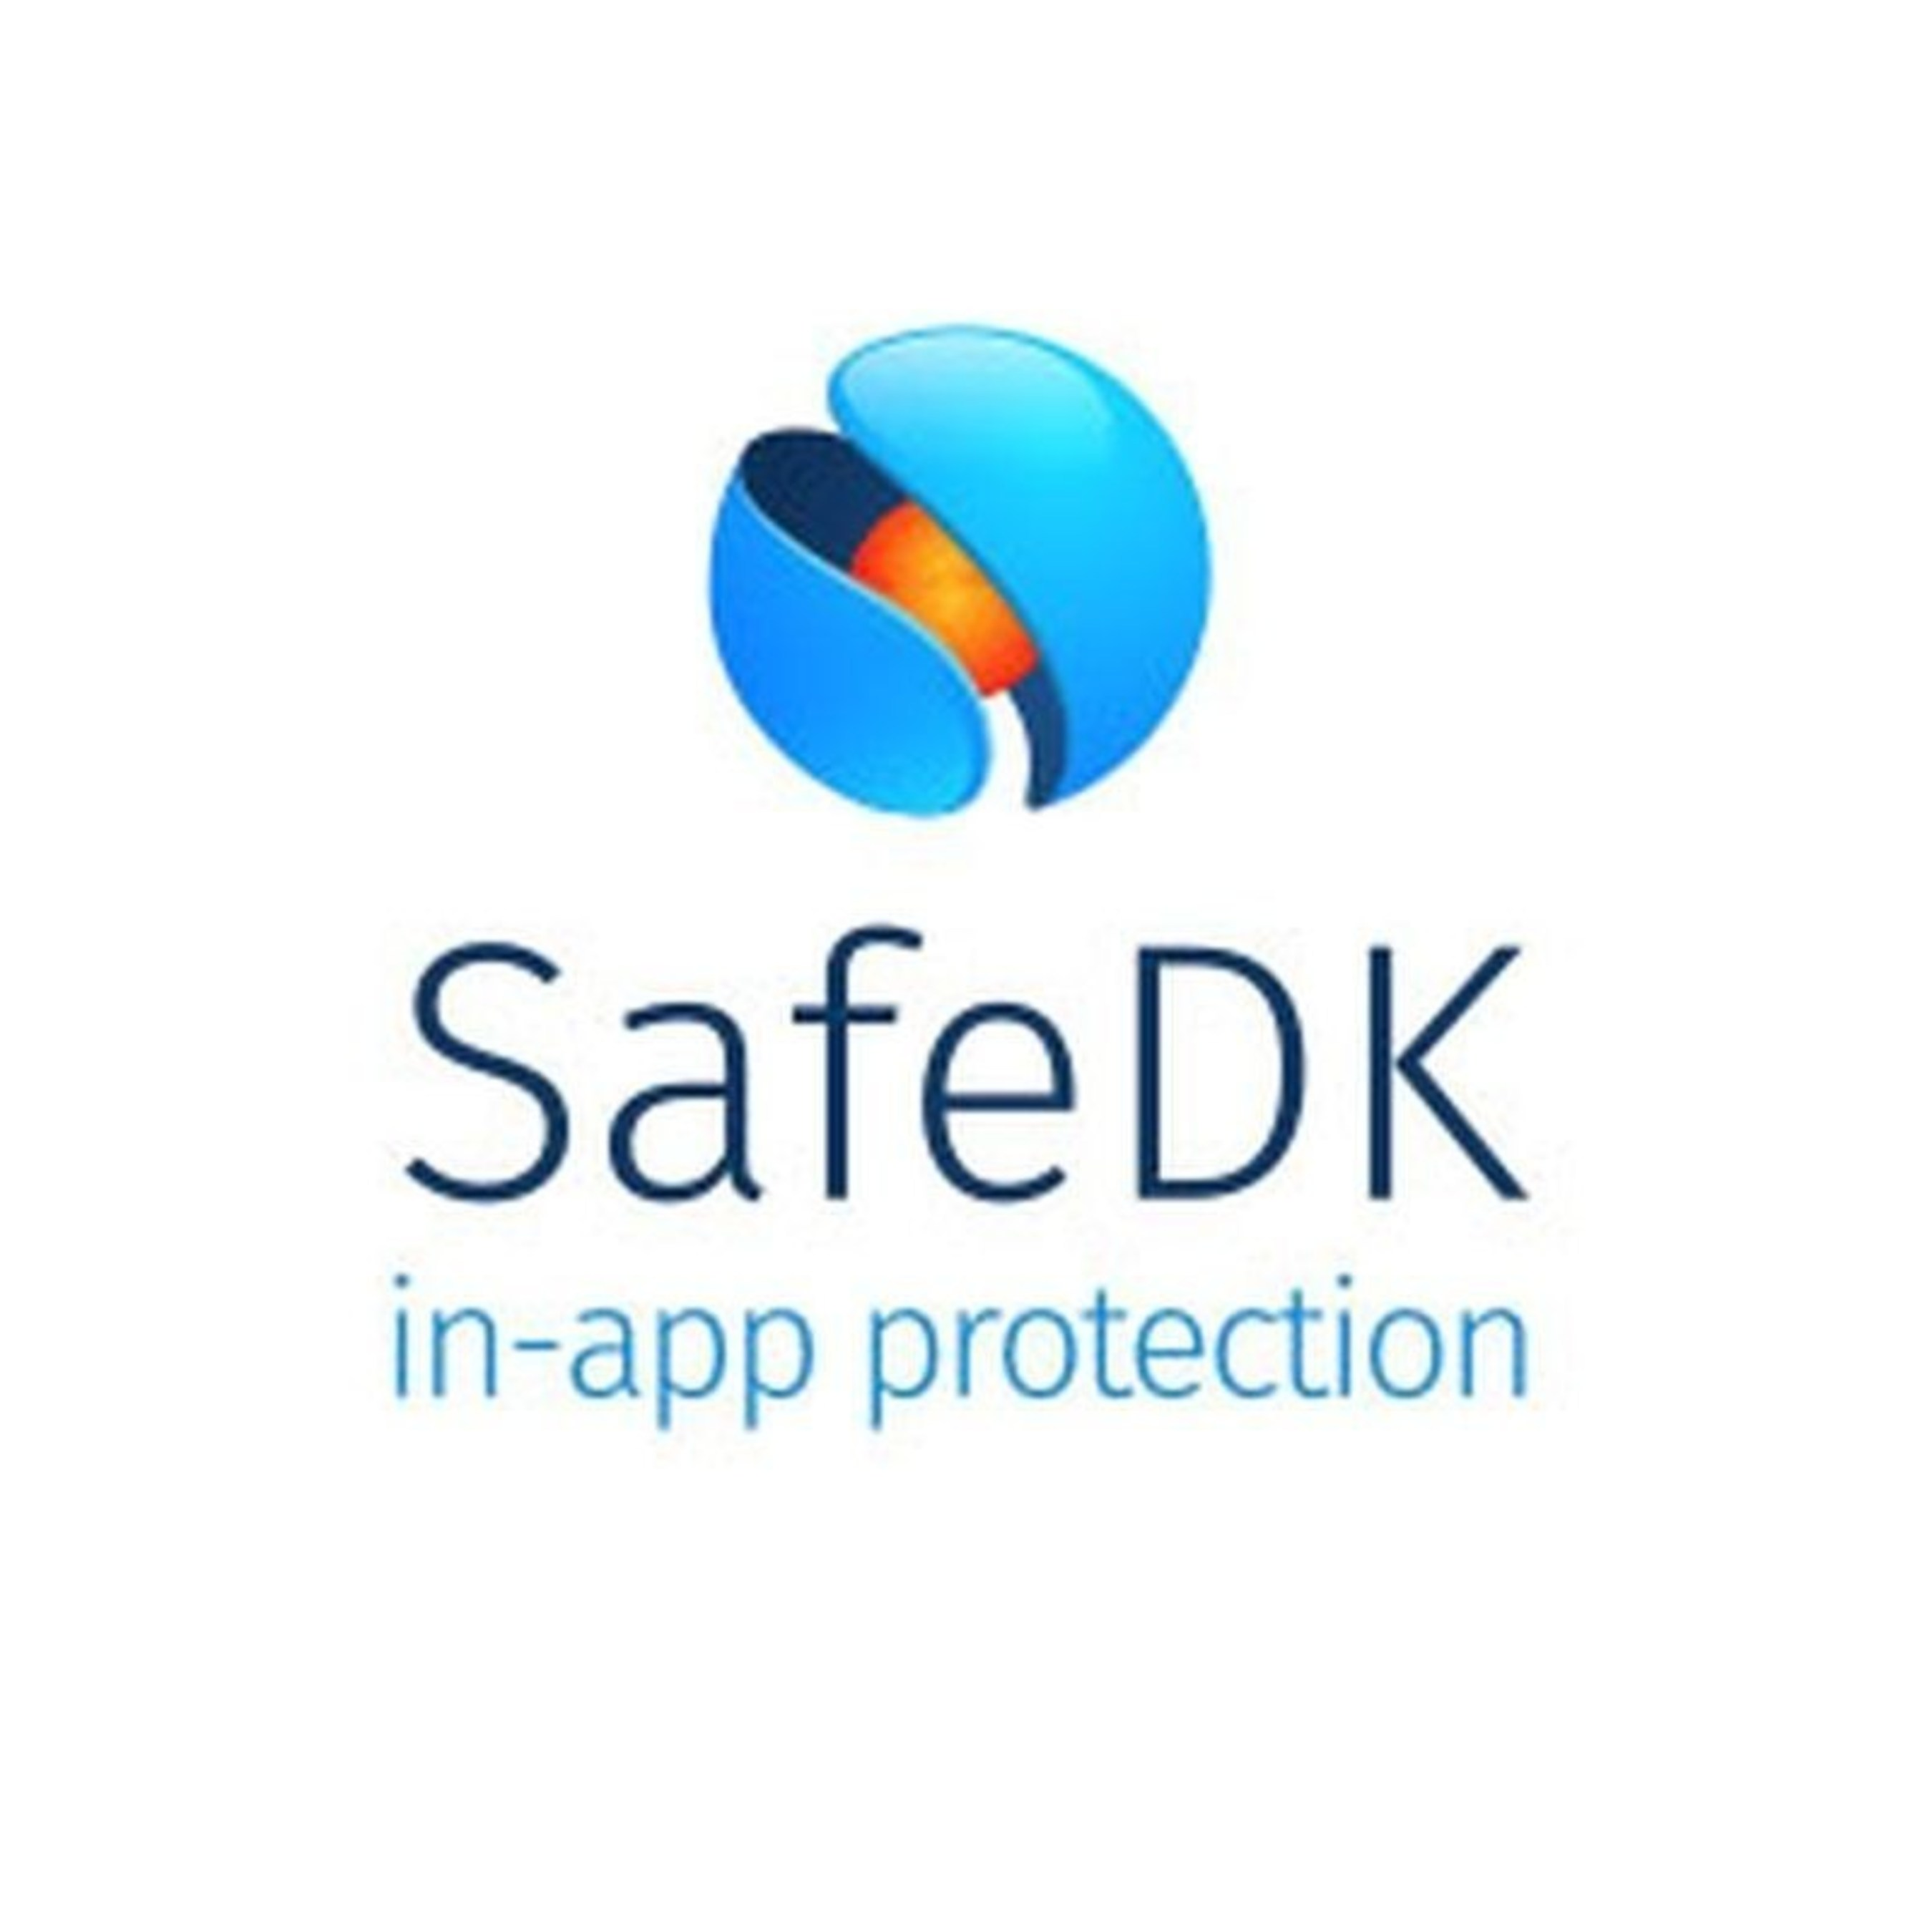 SafeDK Raises $2.25M to Ensure Mobile App Security and Quality in Real-time